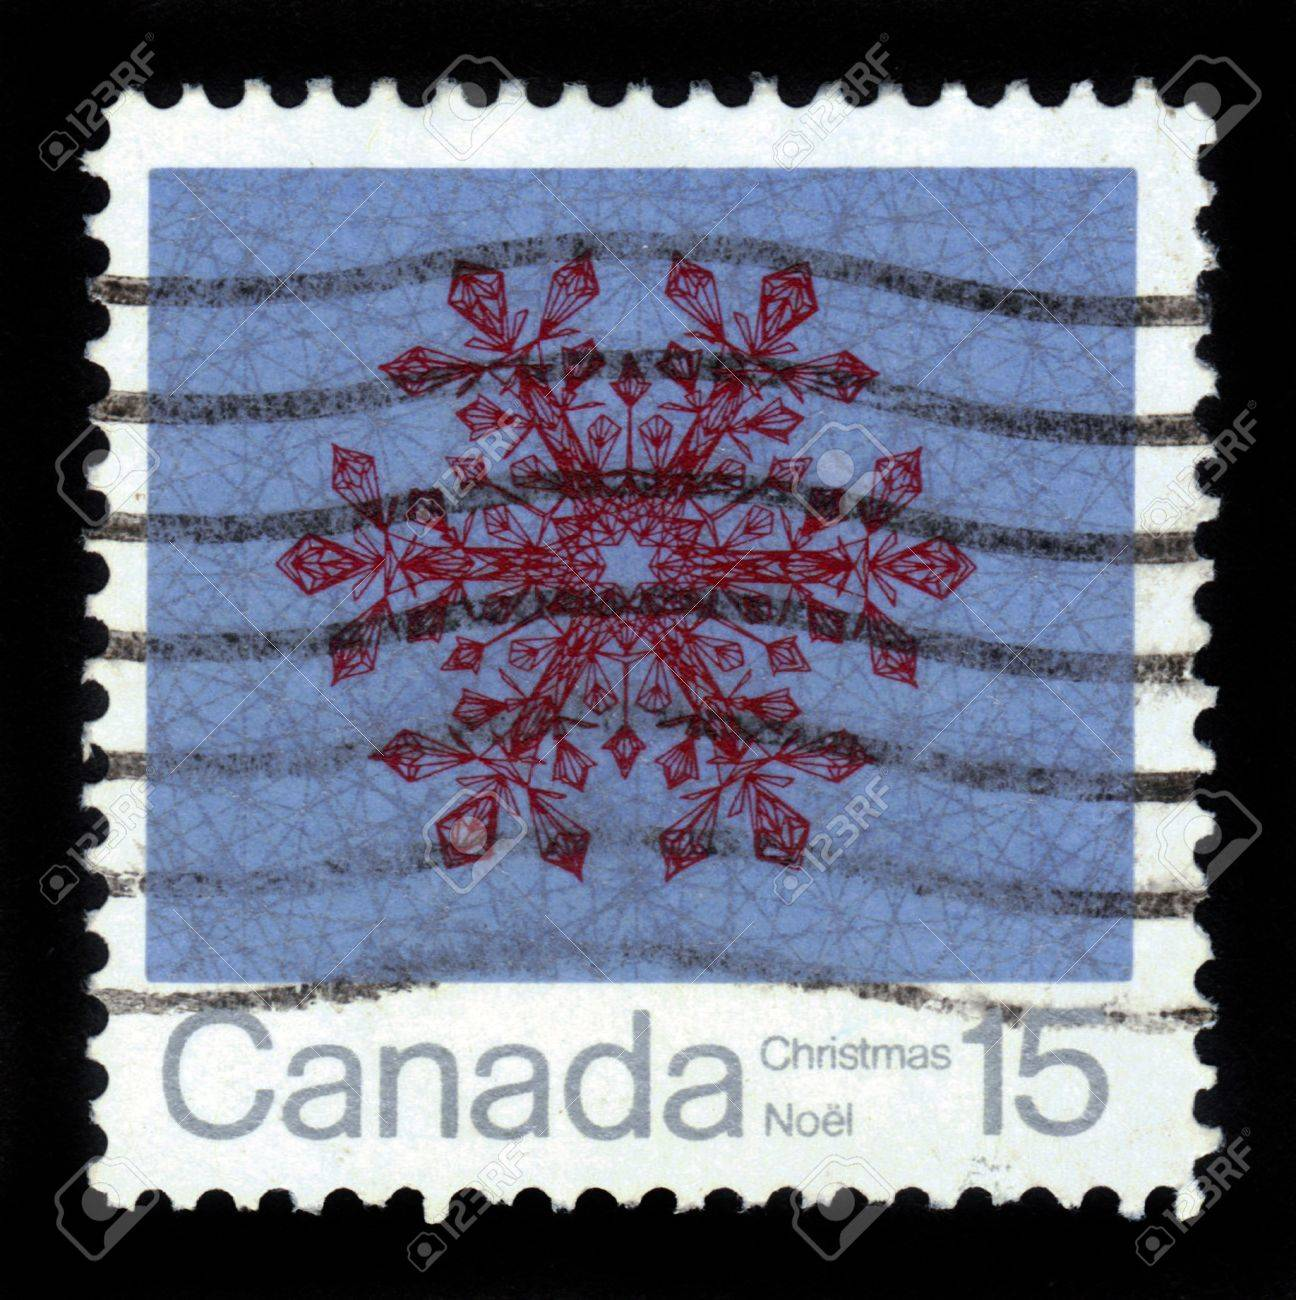 CANADA - CIRCA 1971: A stamp printed in the Canada shows snowflake for Christmas, circa 1971 Stock Photo - 16007413